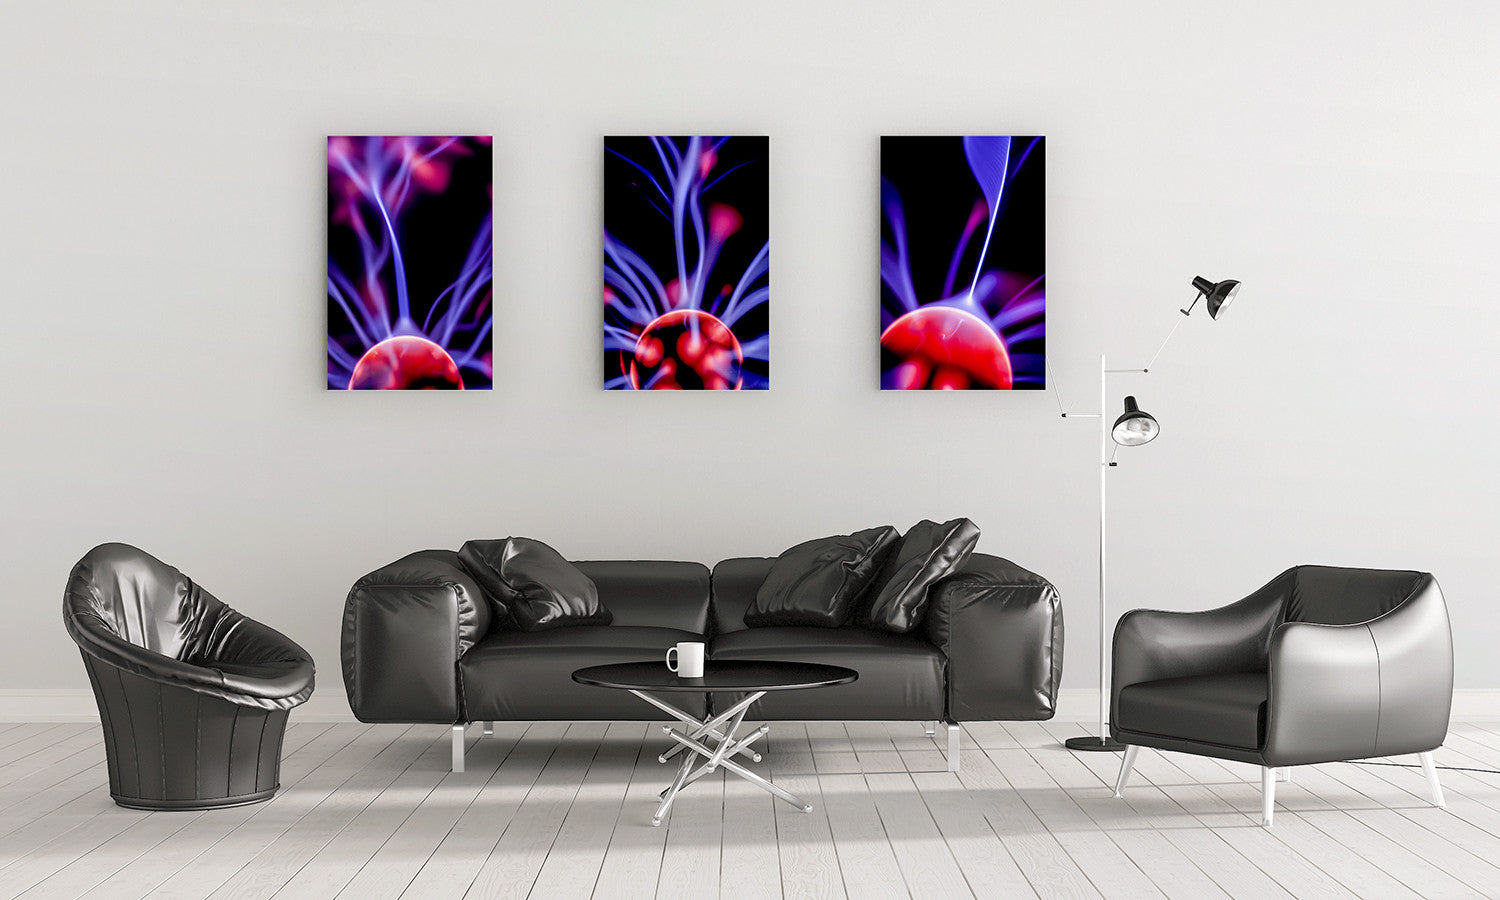 Plasma Wall Canvas 2 of 3